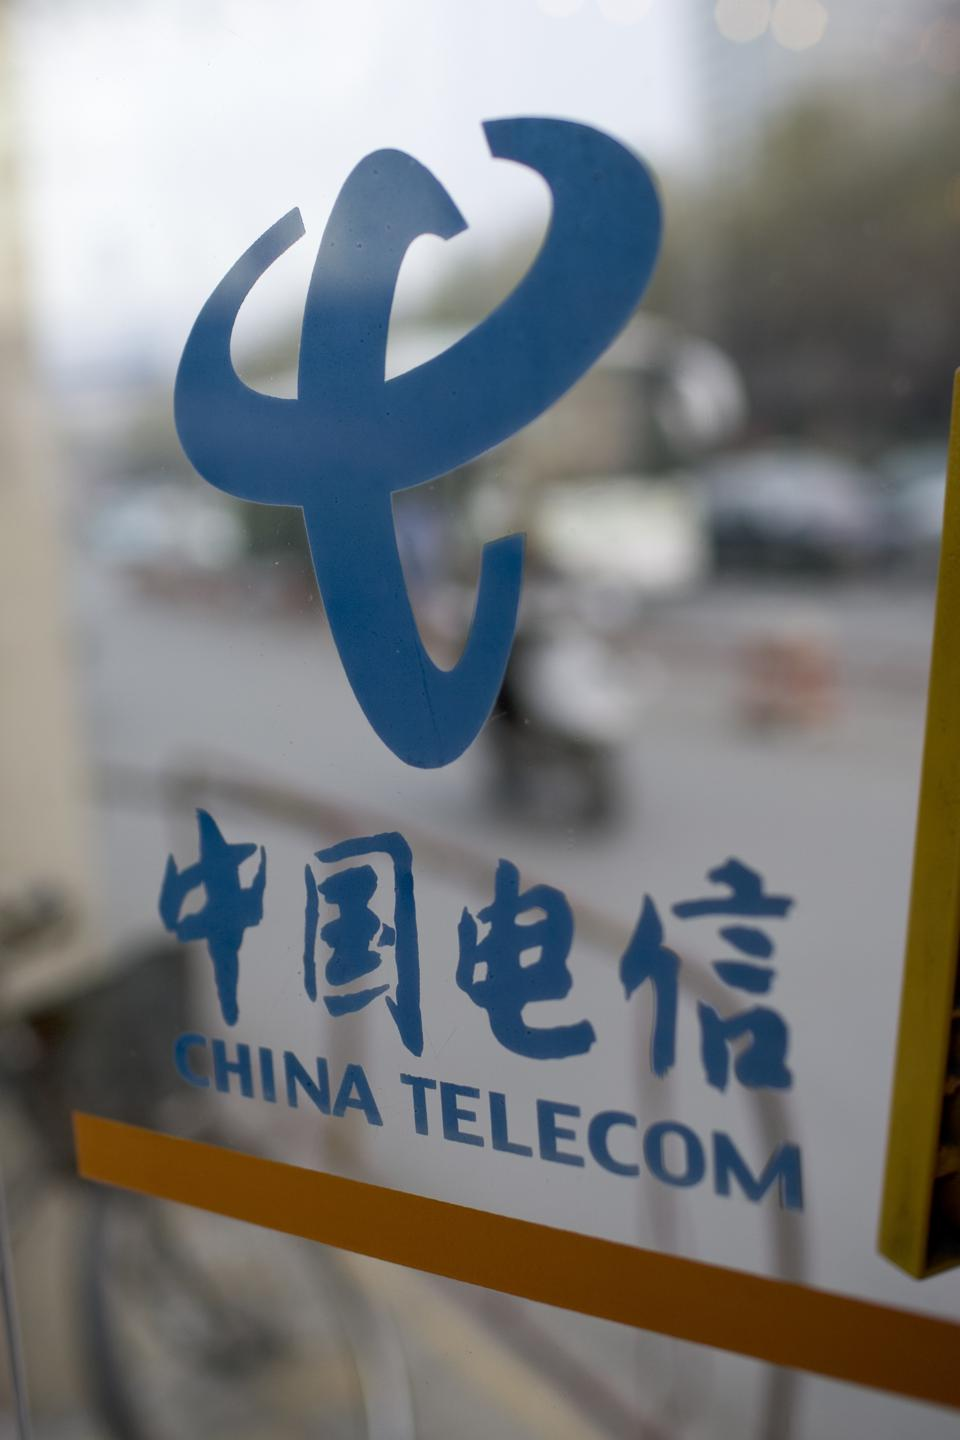 A China Telecom in Shanghai